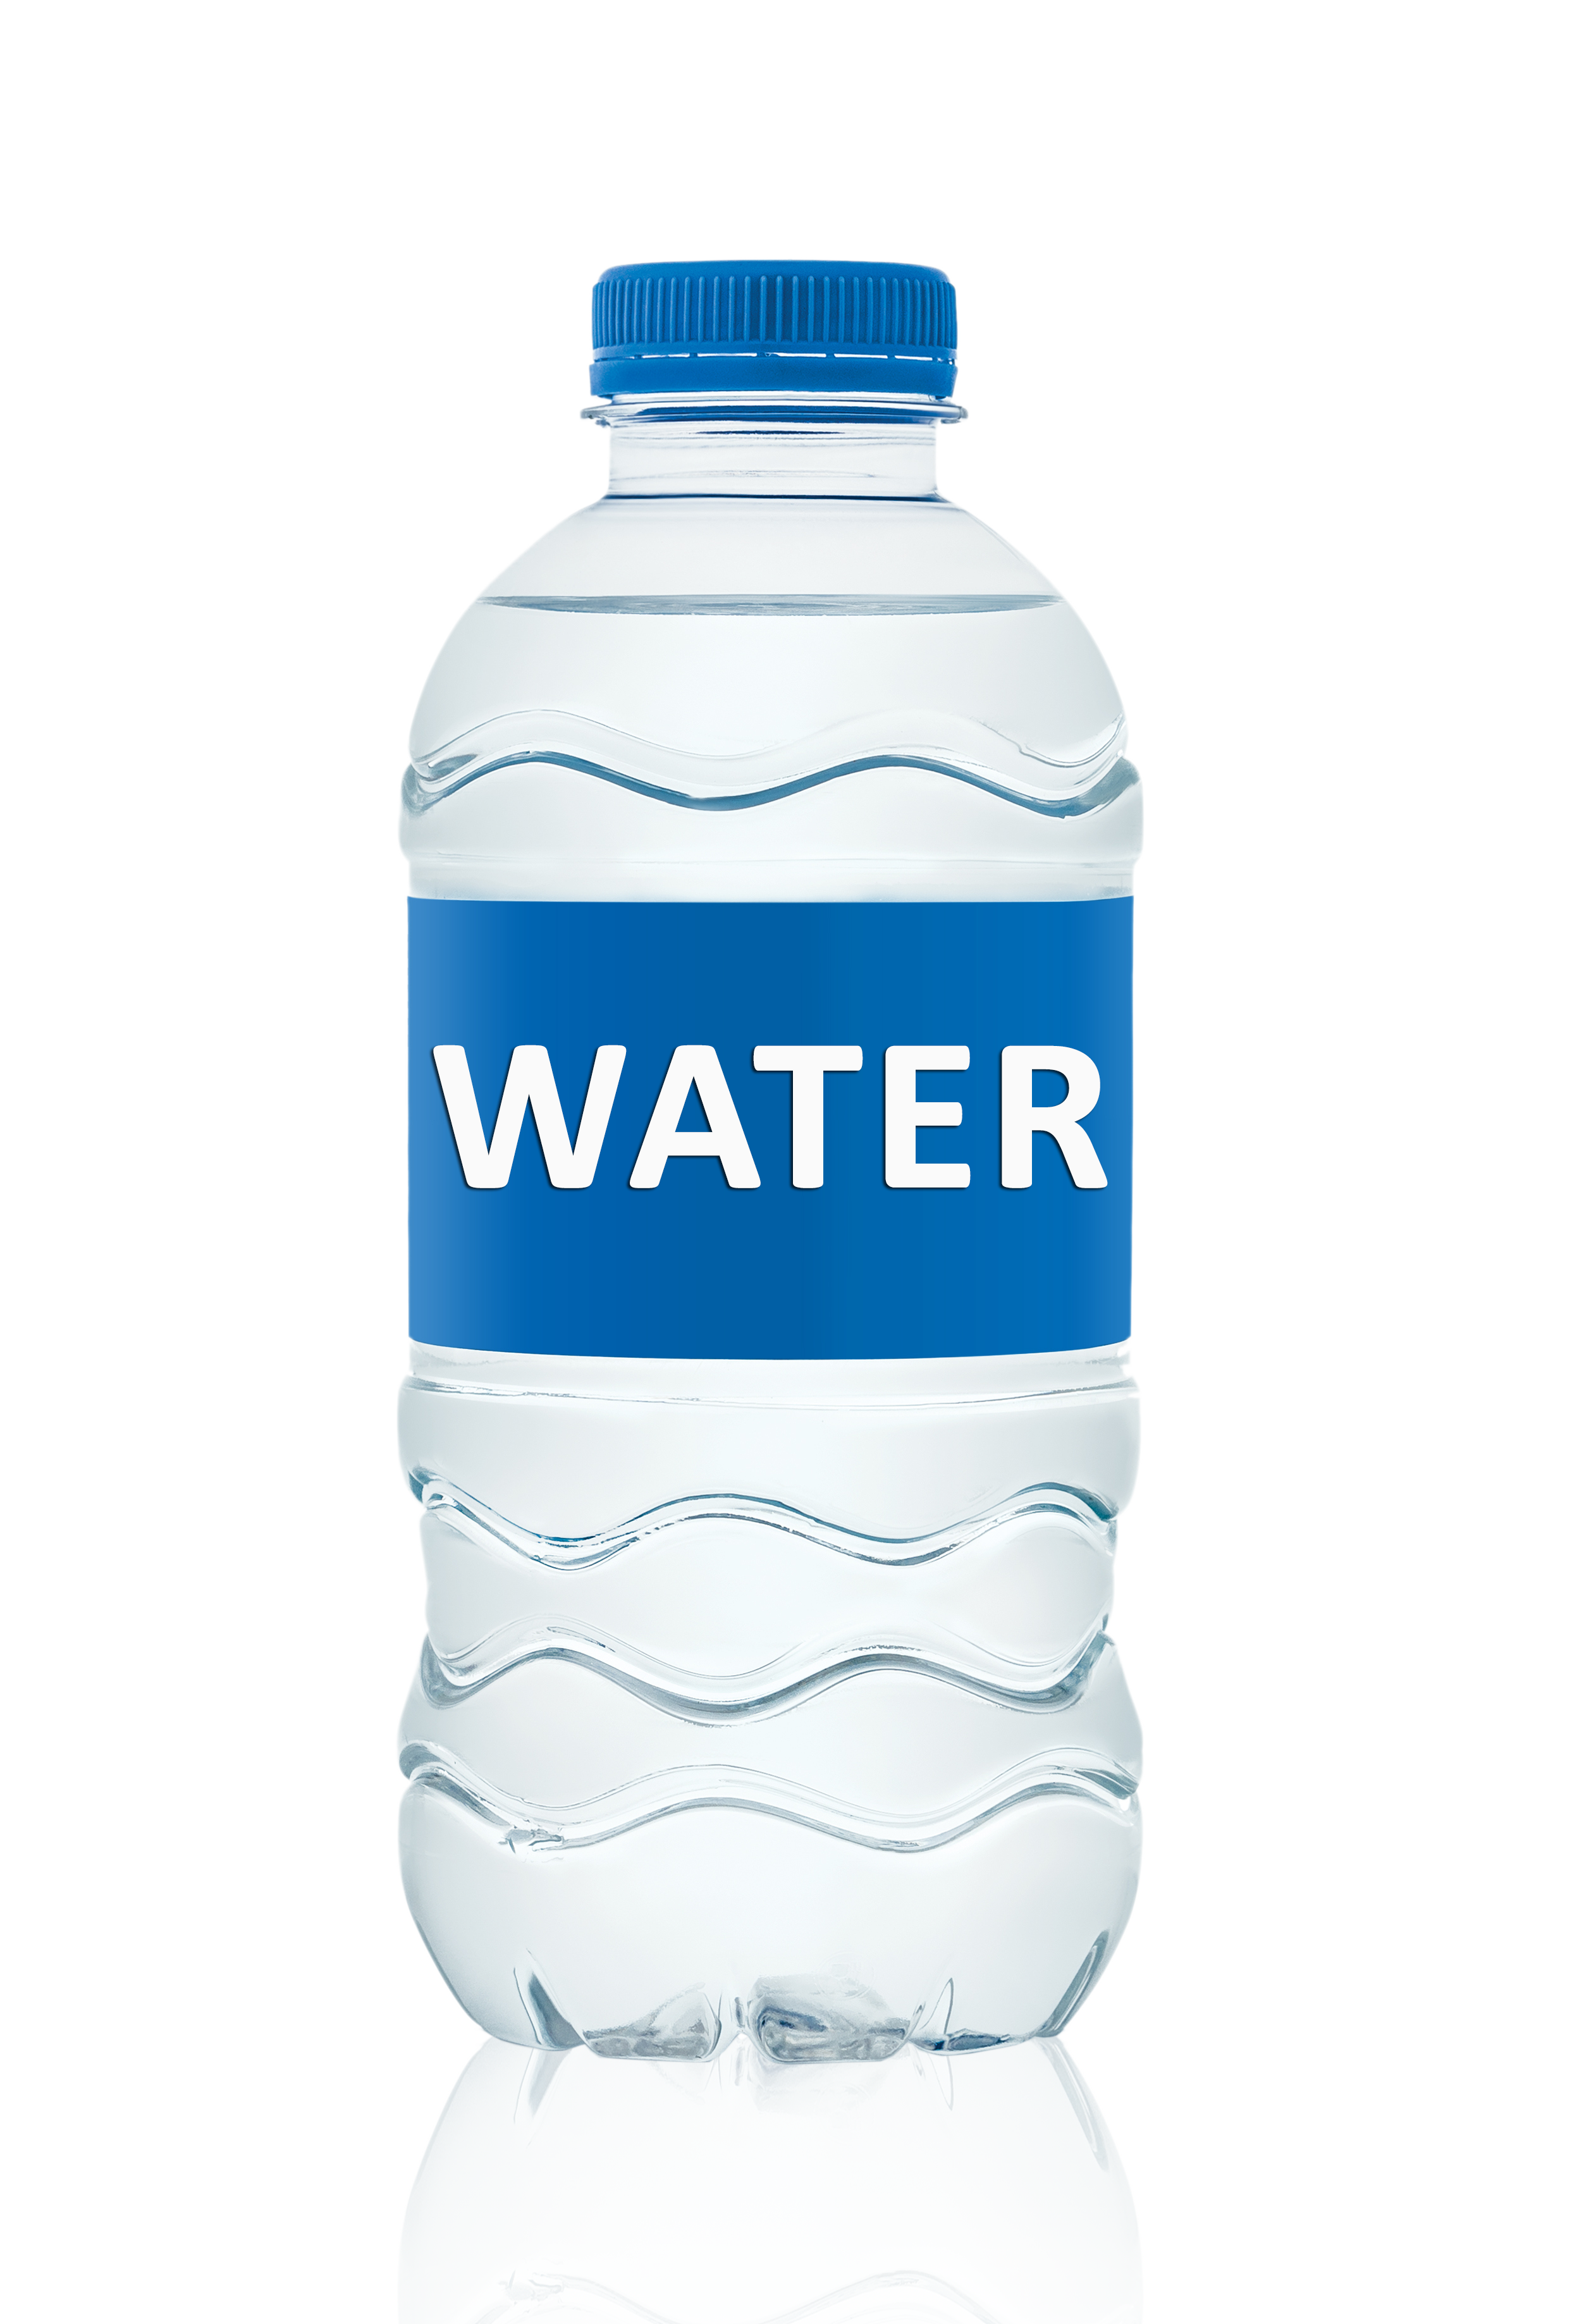 Water Bottle Vector 20635